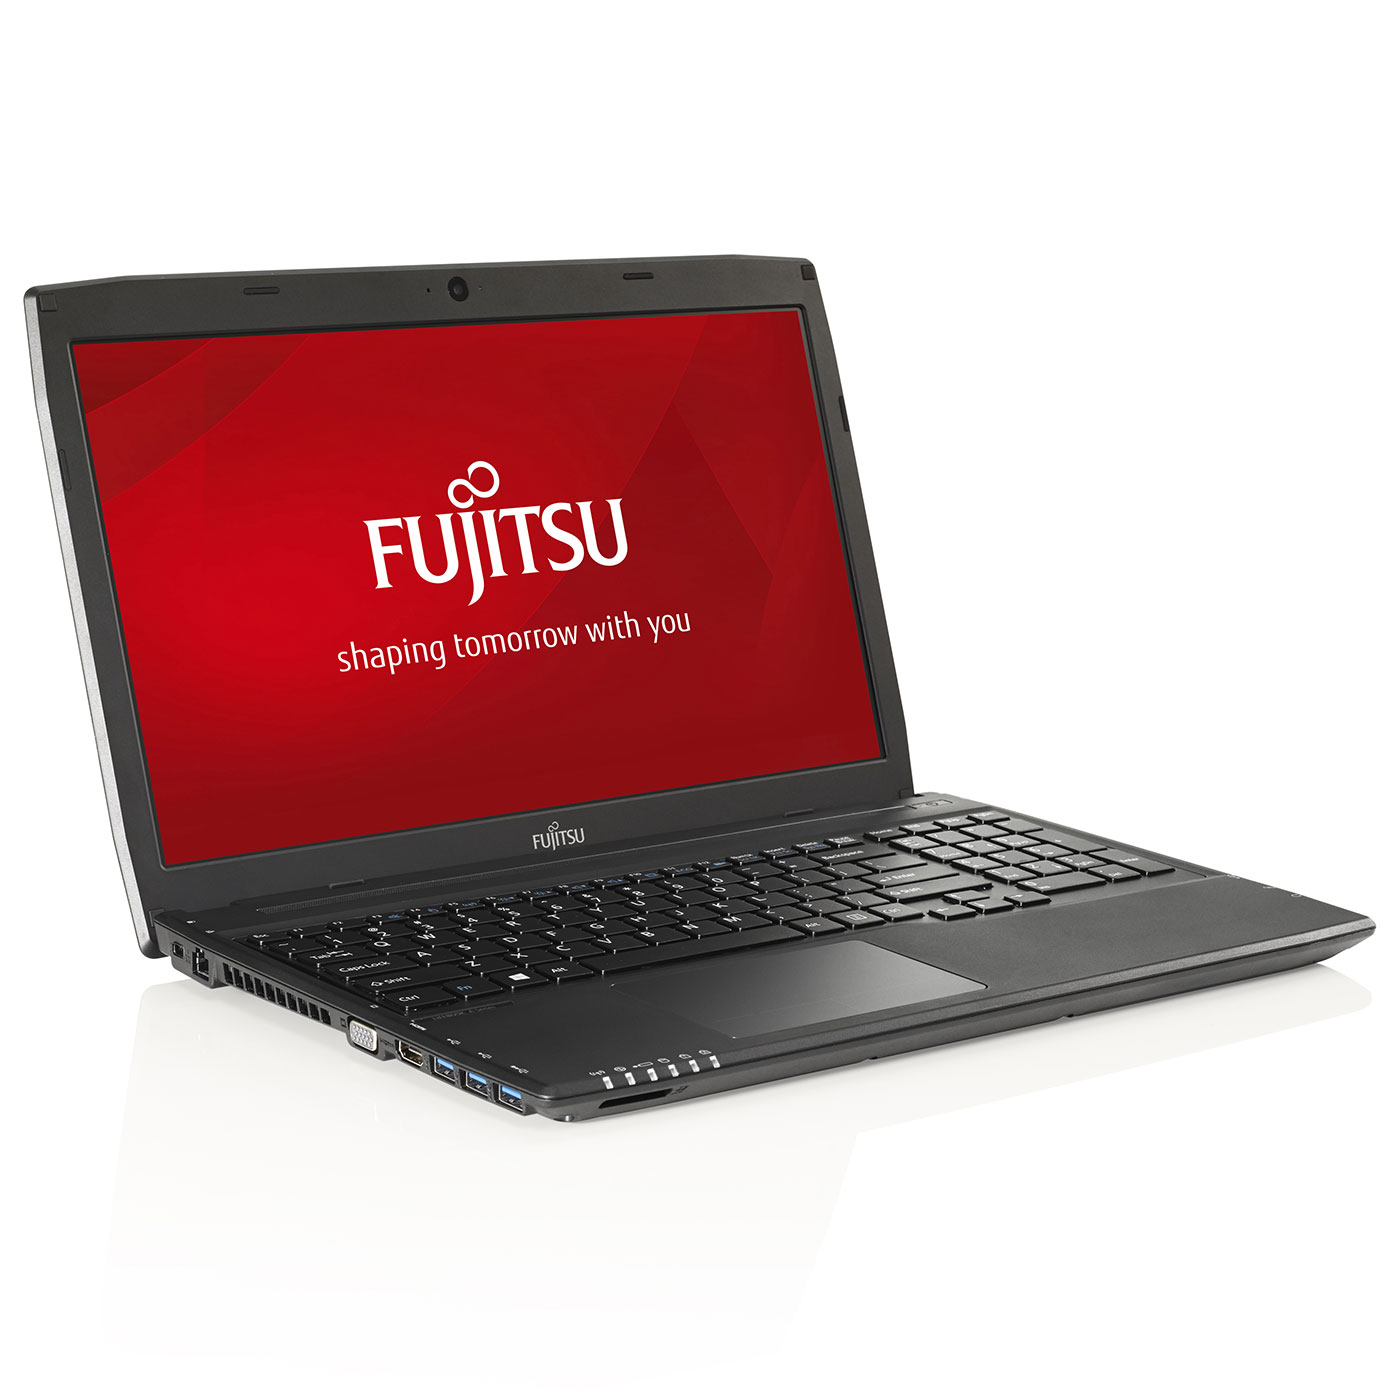 fujitsu lifebook a514 vfy a5140m430ofr pc portable. Black Bedroom Furniture Sets. Home Design Ideas